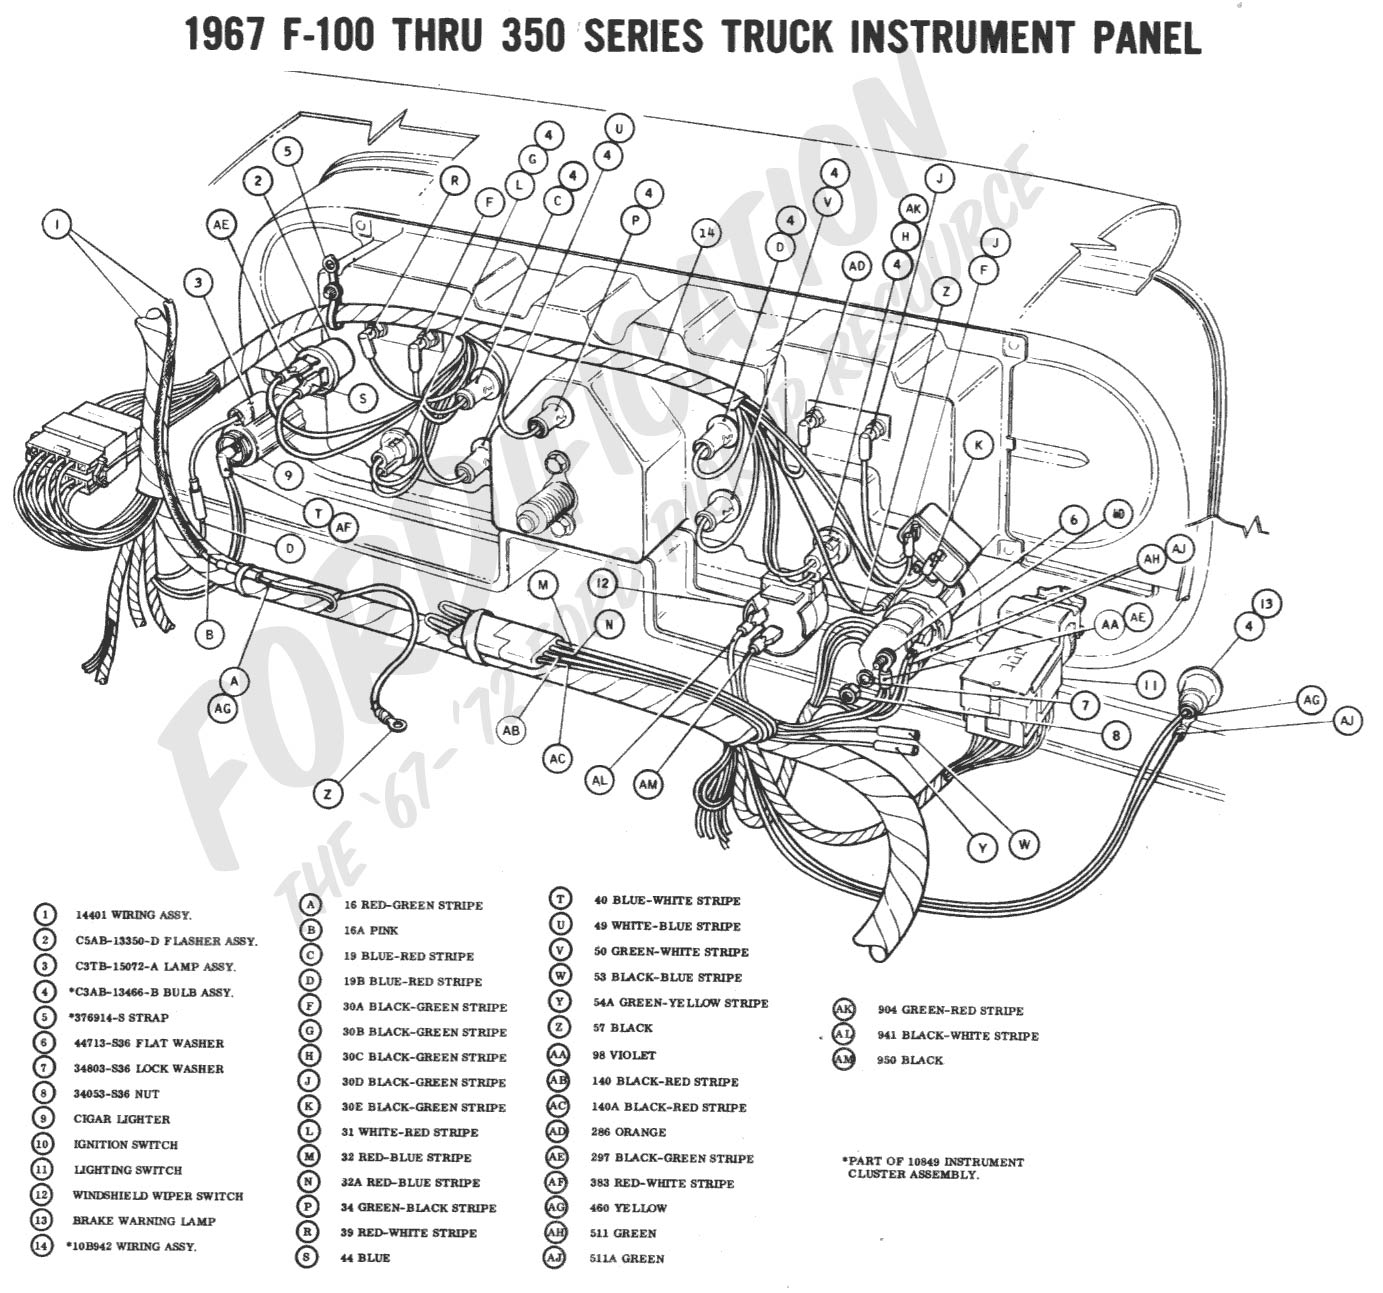 Ford Truck Technical Drawings And Schematics Section H Wiring 2 Stroke Engine Wire Diagram 1967 F 100 Thru 350 Instrument Panel Master